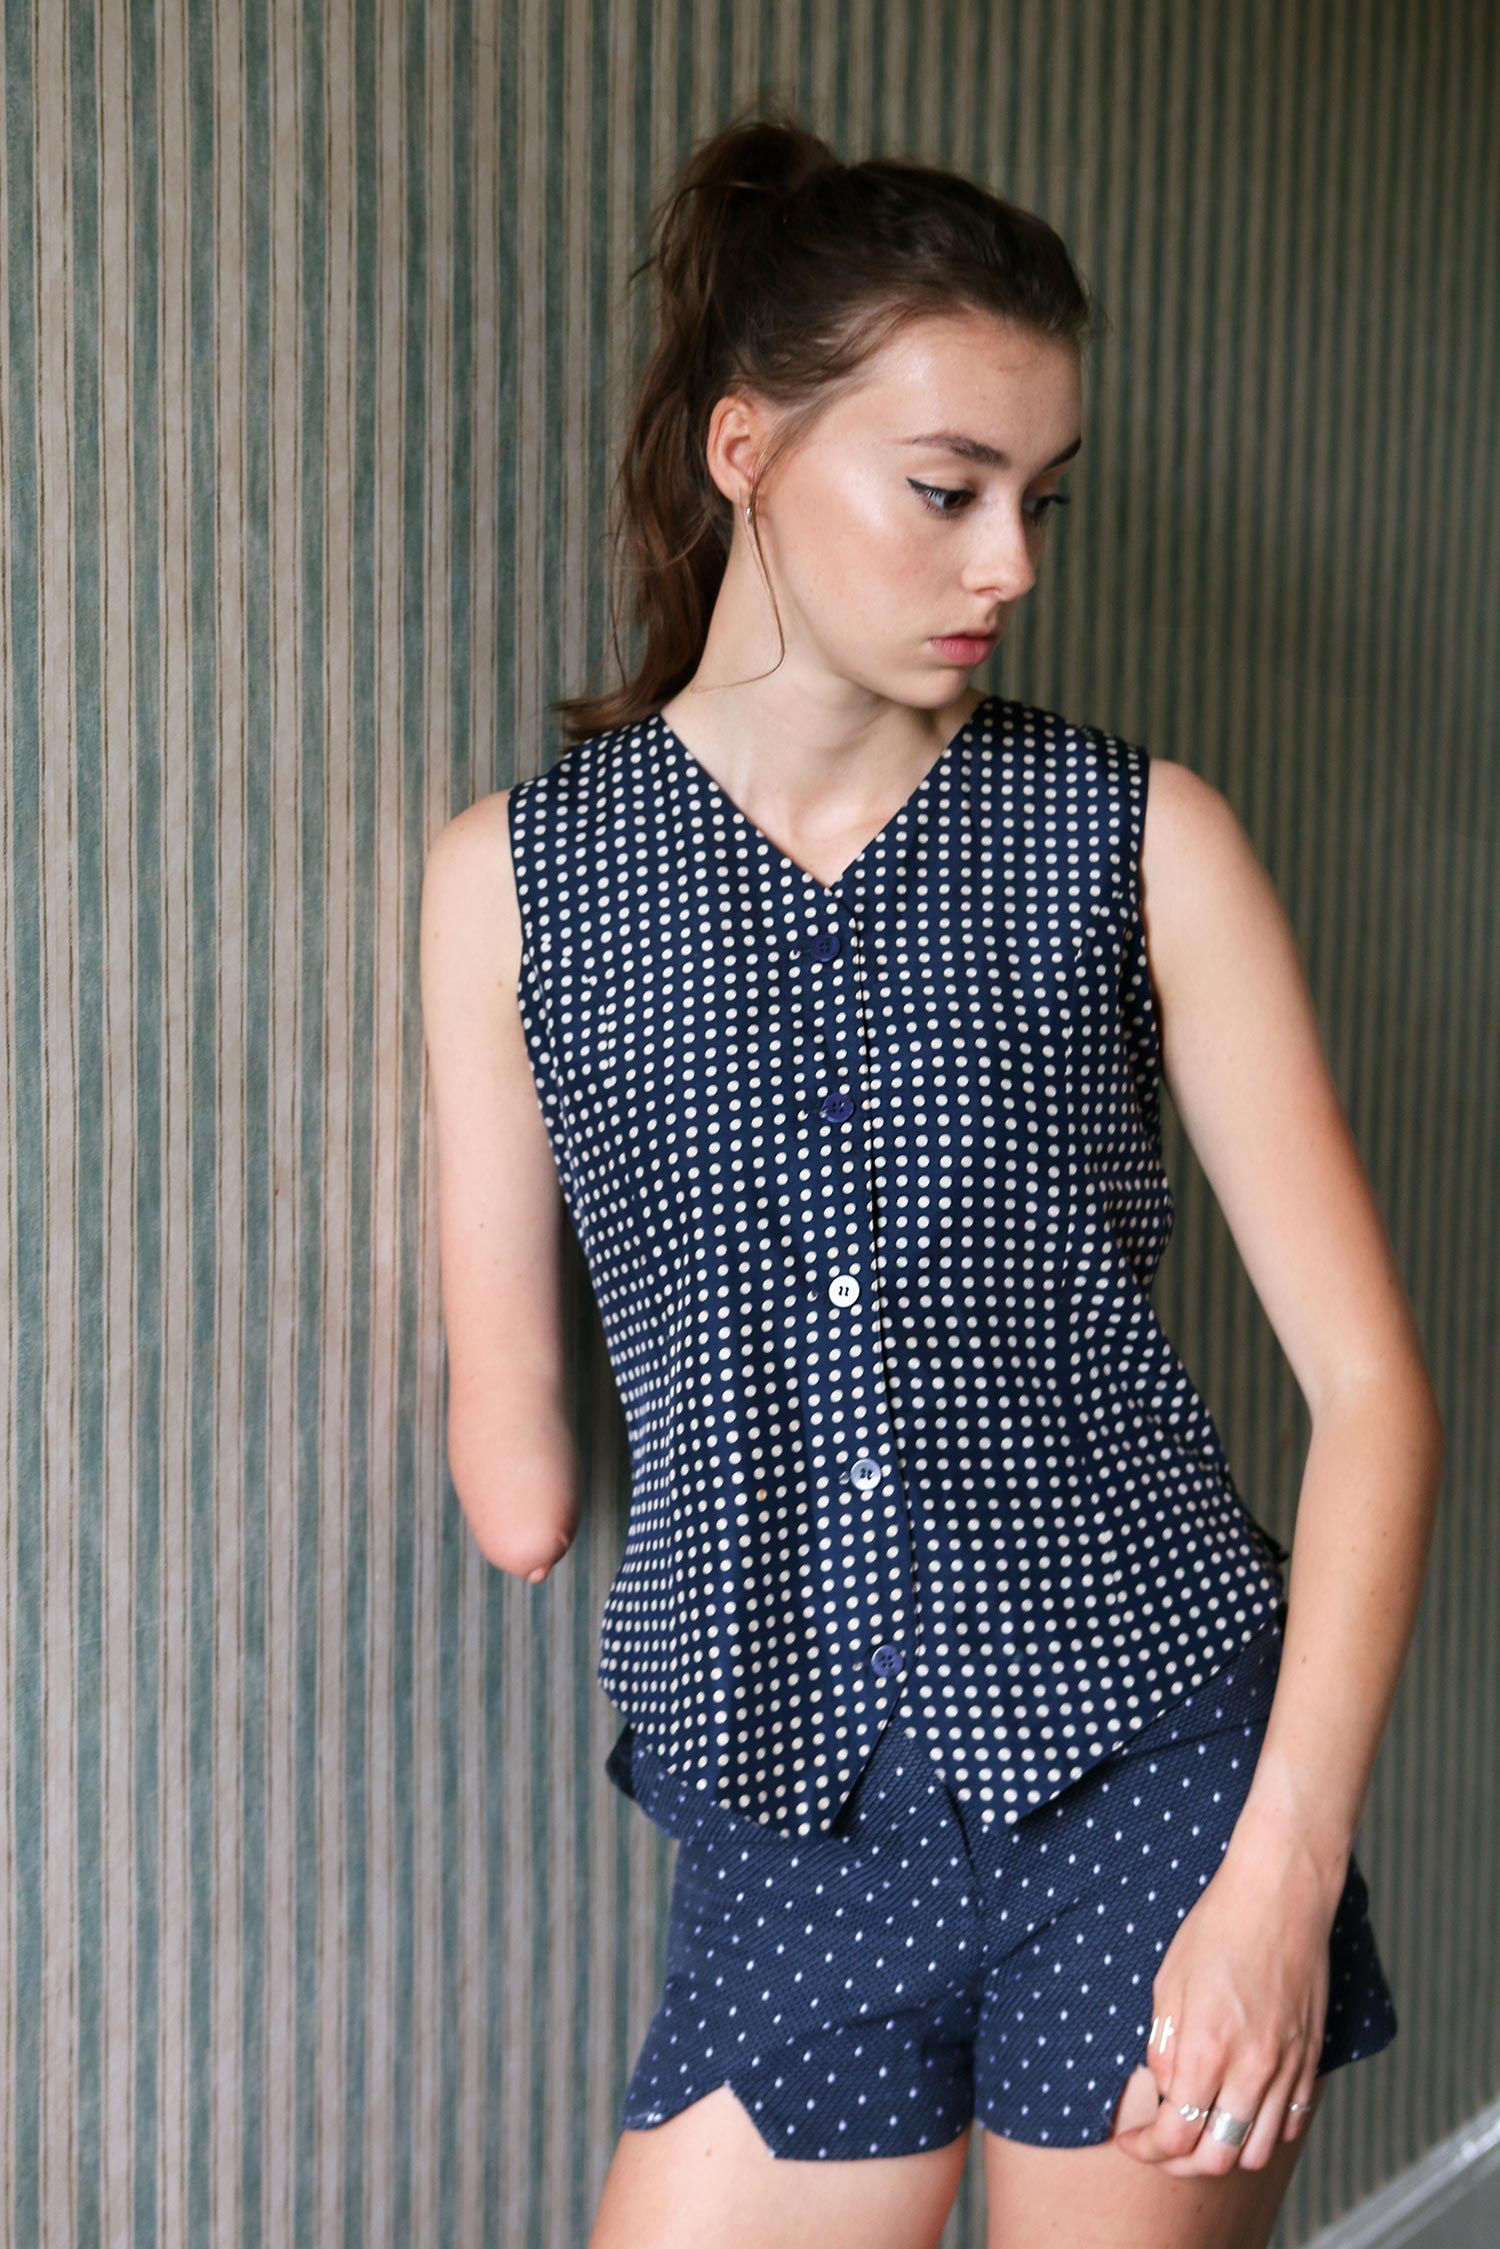 vintage waistcoat, amputee, one hand, kelly know, grace mandeville, disabled blogger, disabled fashion